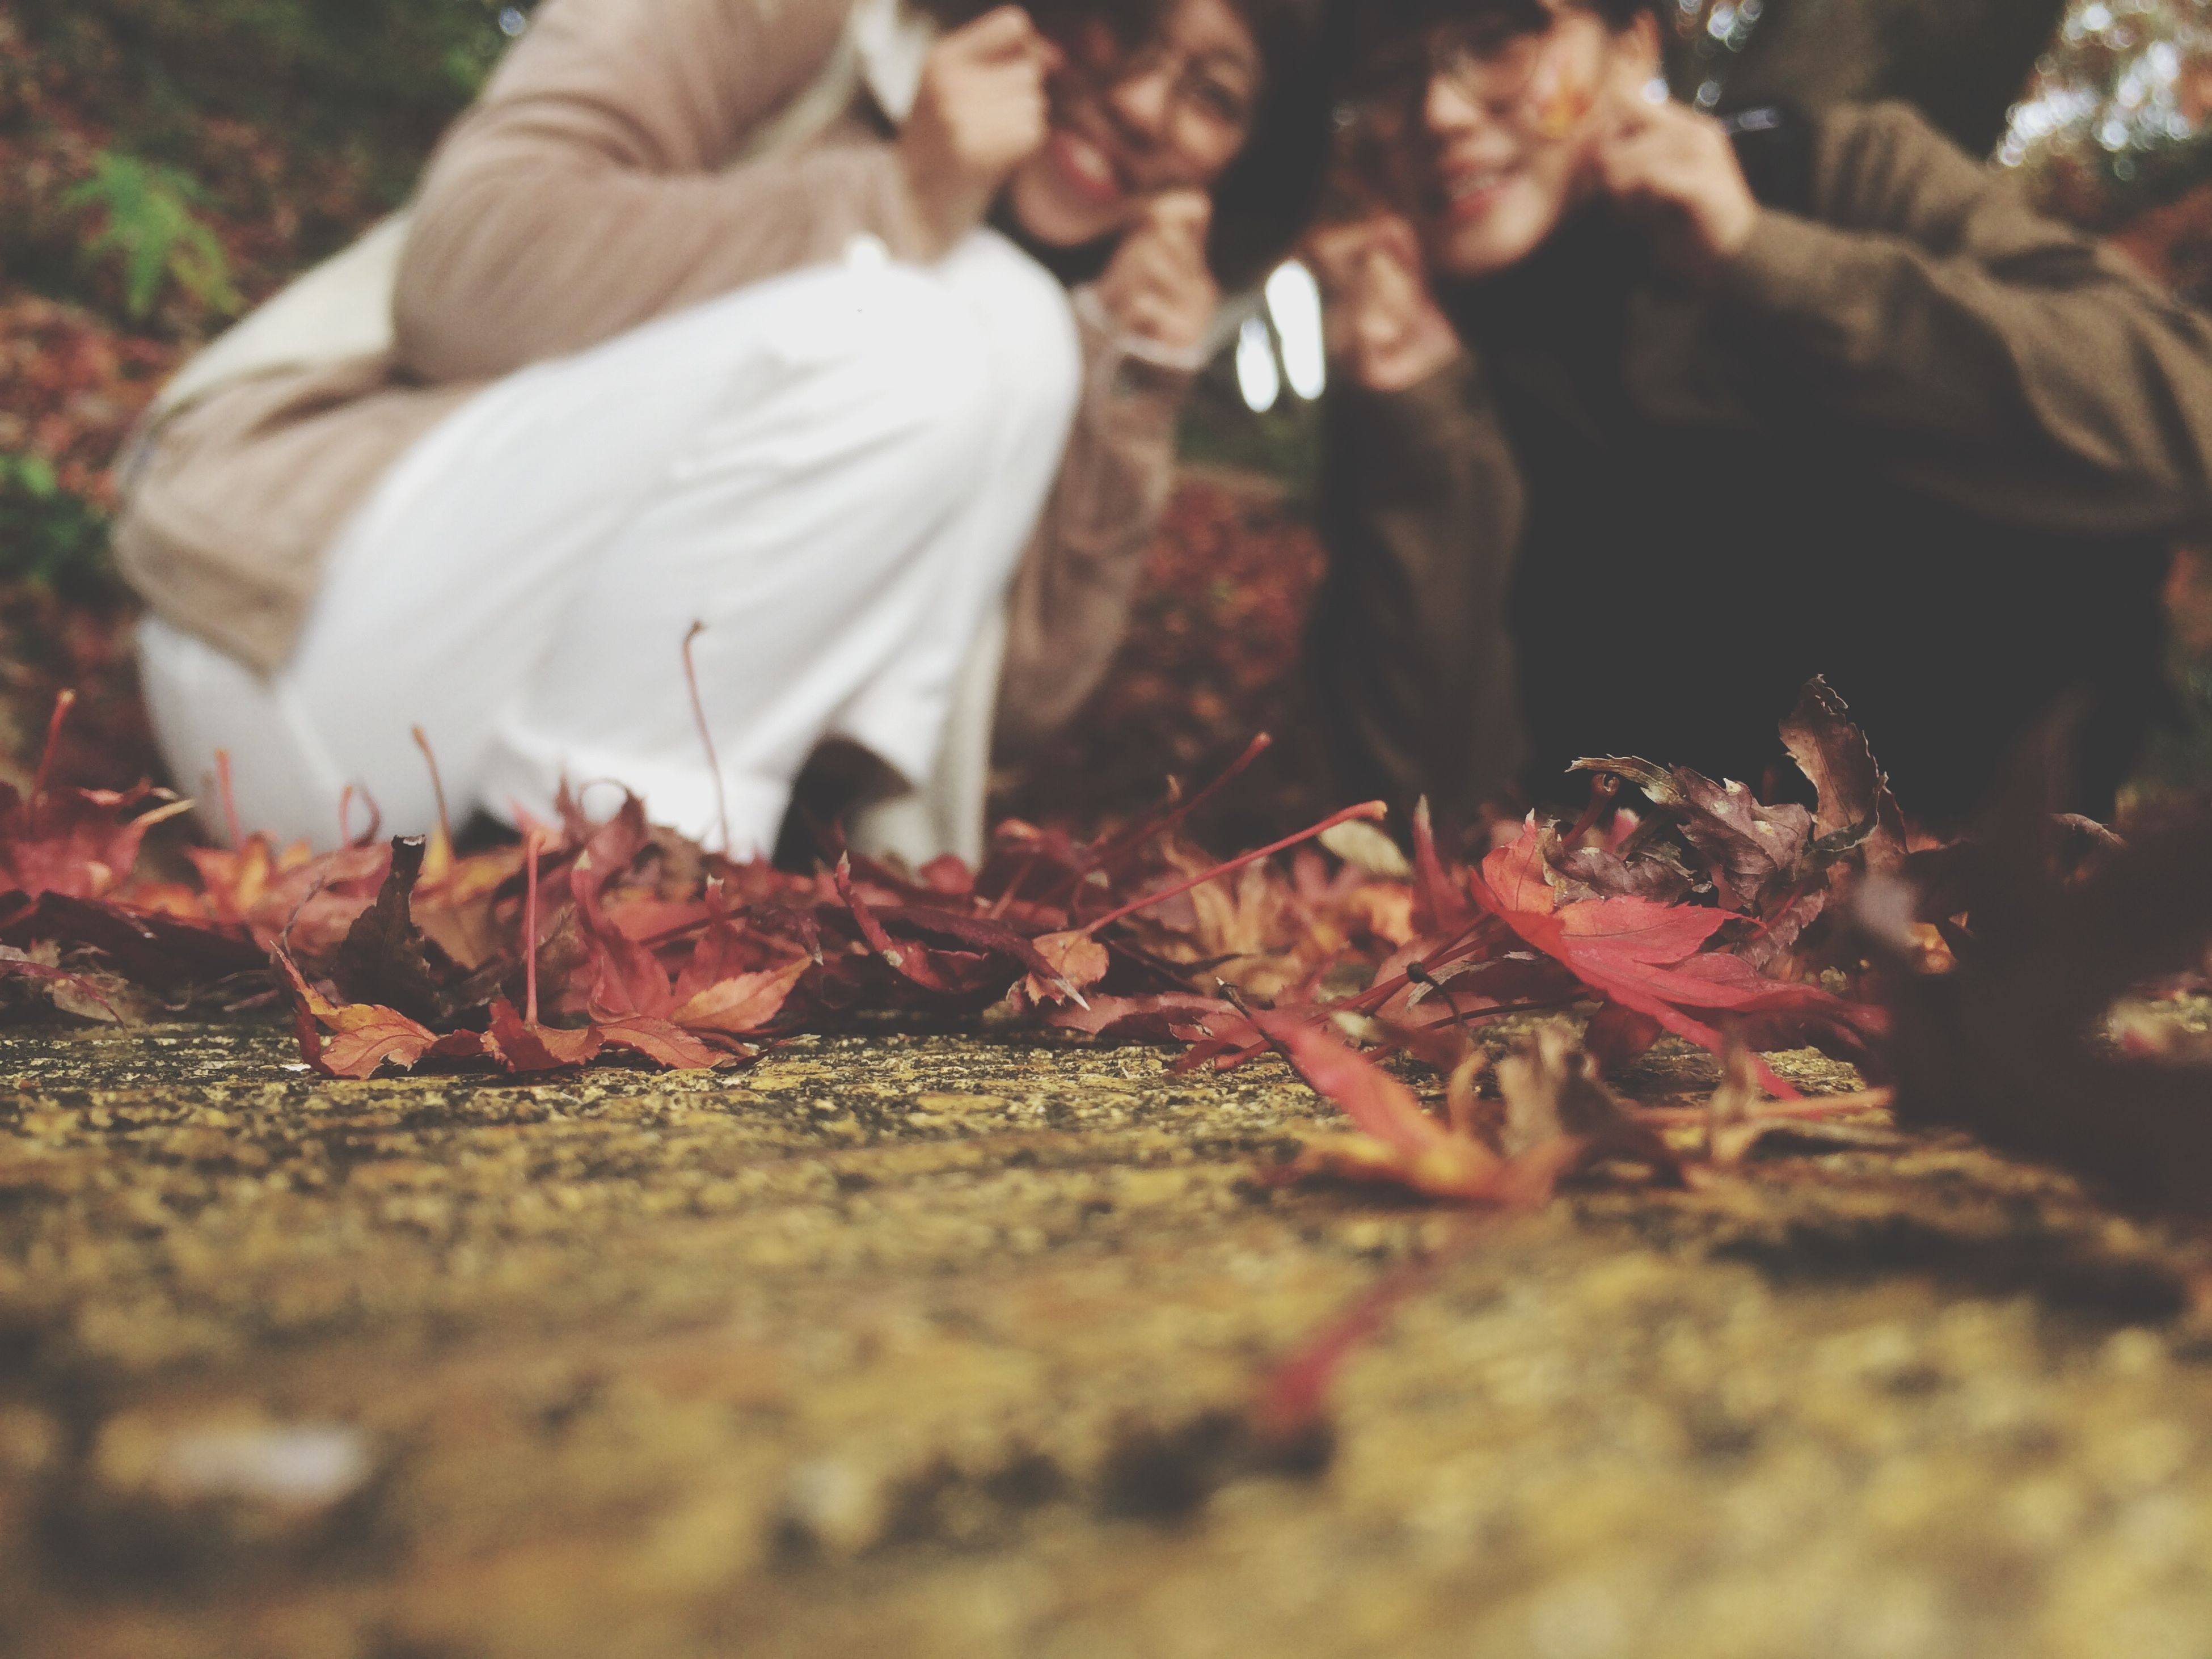 men, autumn, leaf, lifestyles, dry, selective focus, leisure activity, change, leaves, field, low section, outdoors, fallen, day, person, unrecognizable person, standing